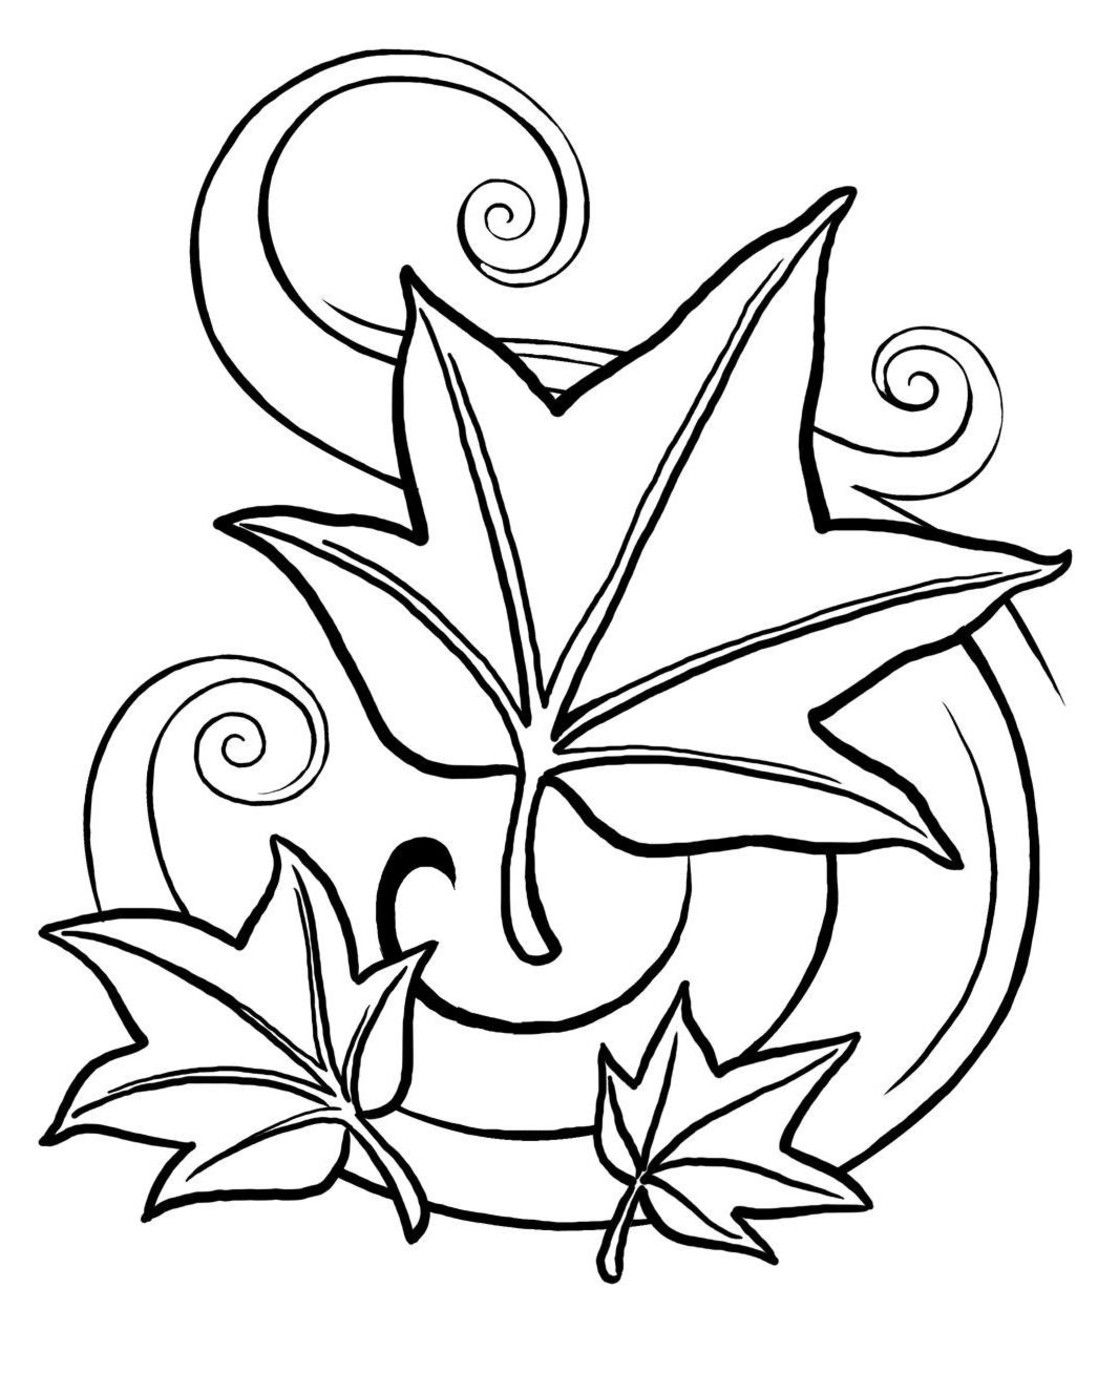 Fall Harvest Coloring Pages At Getdrawings Com Free For Personal